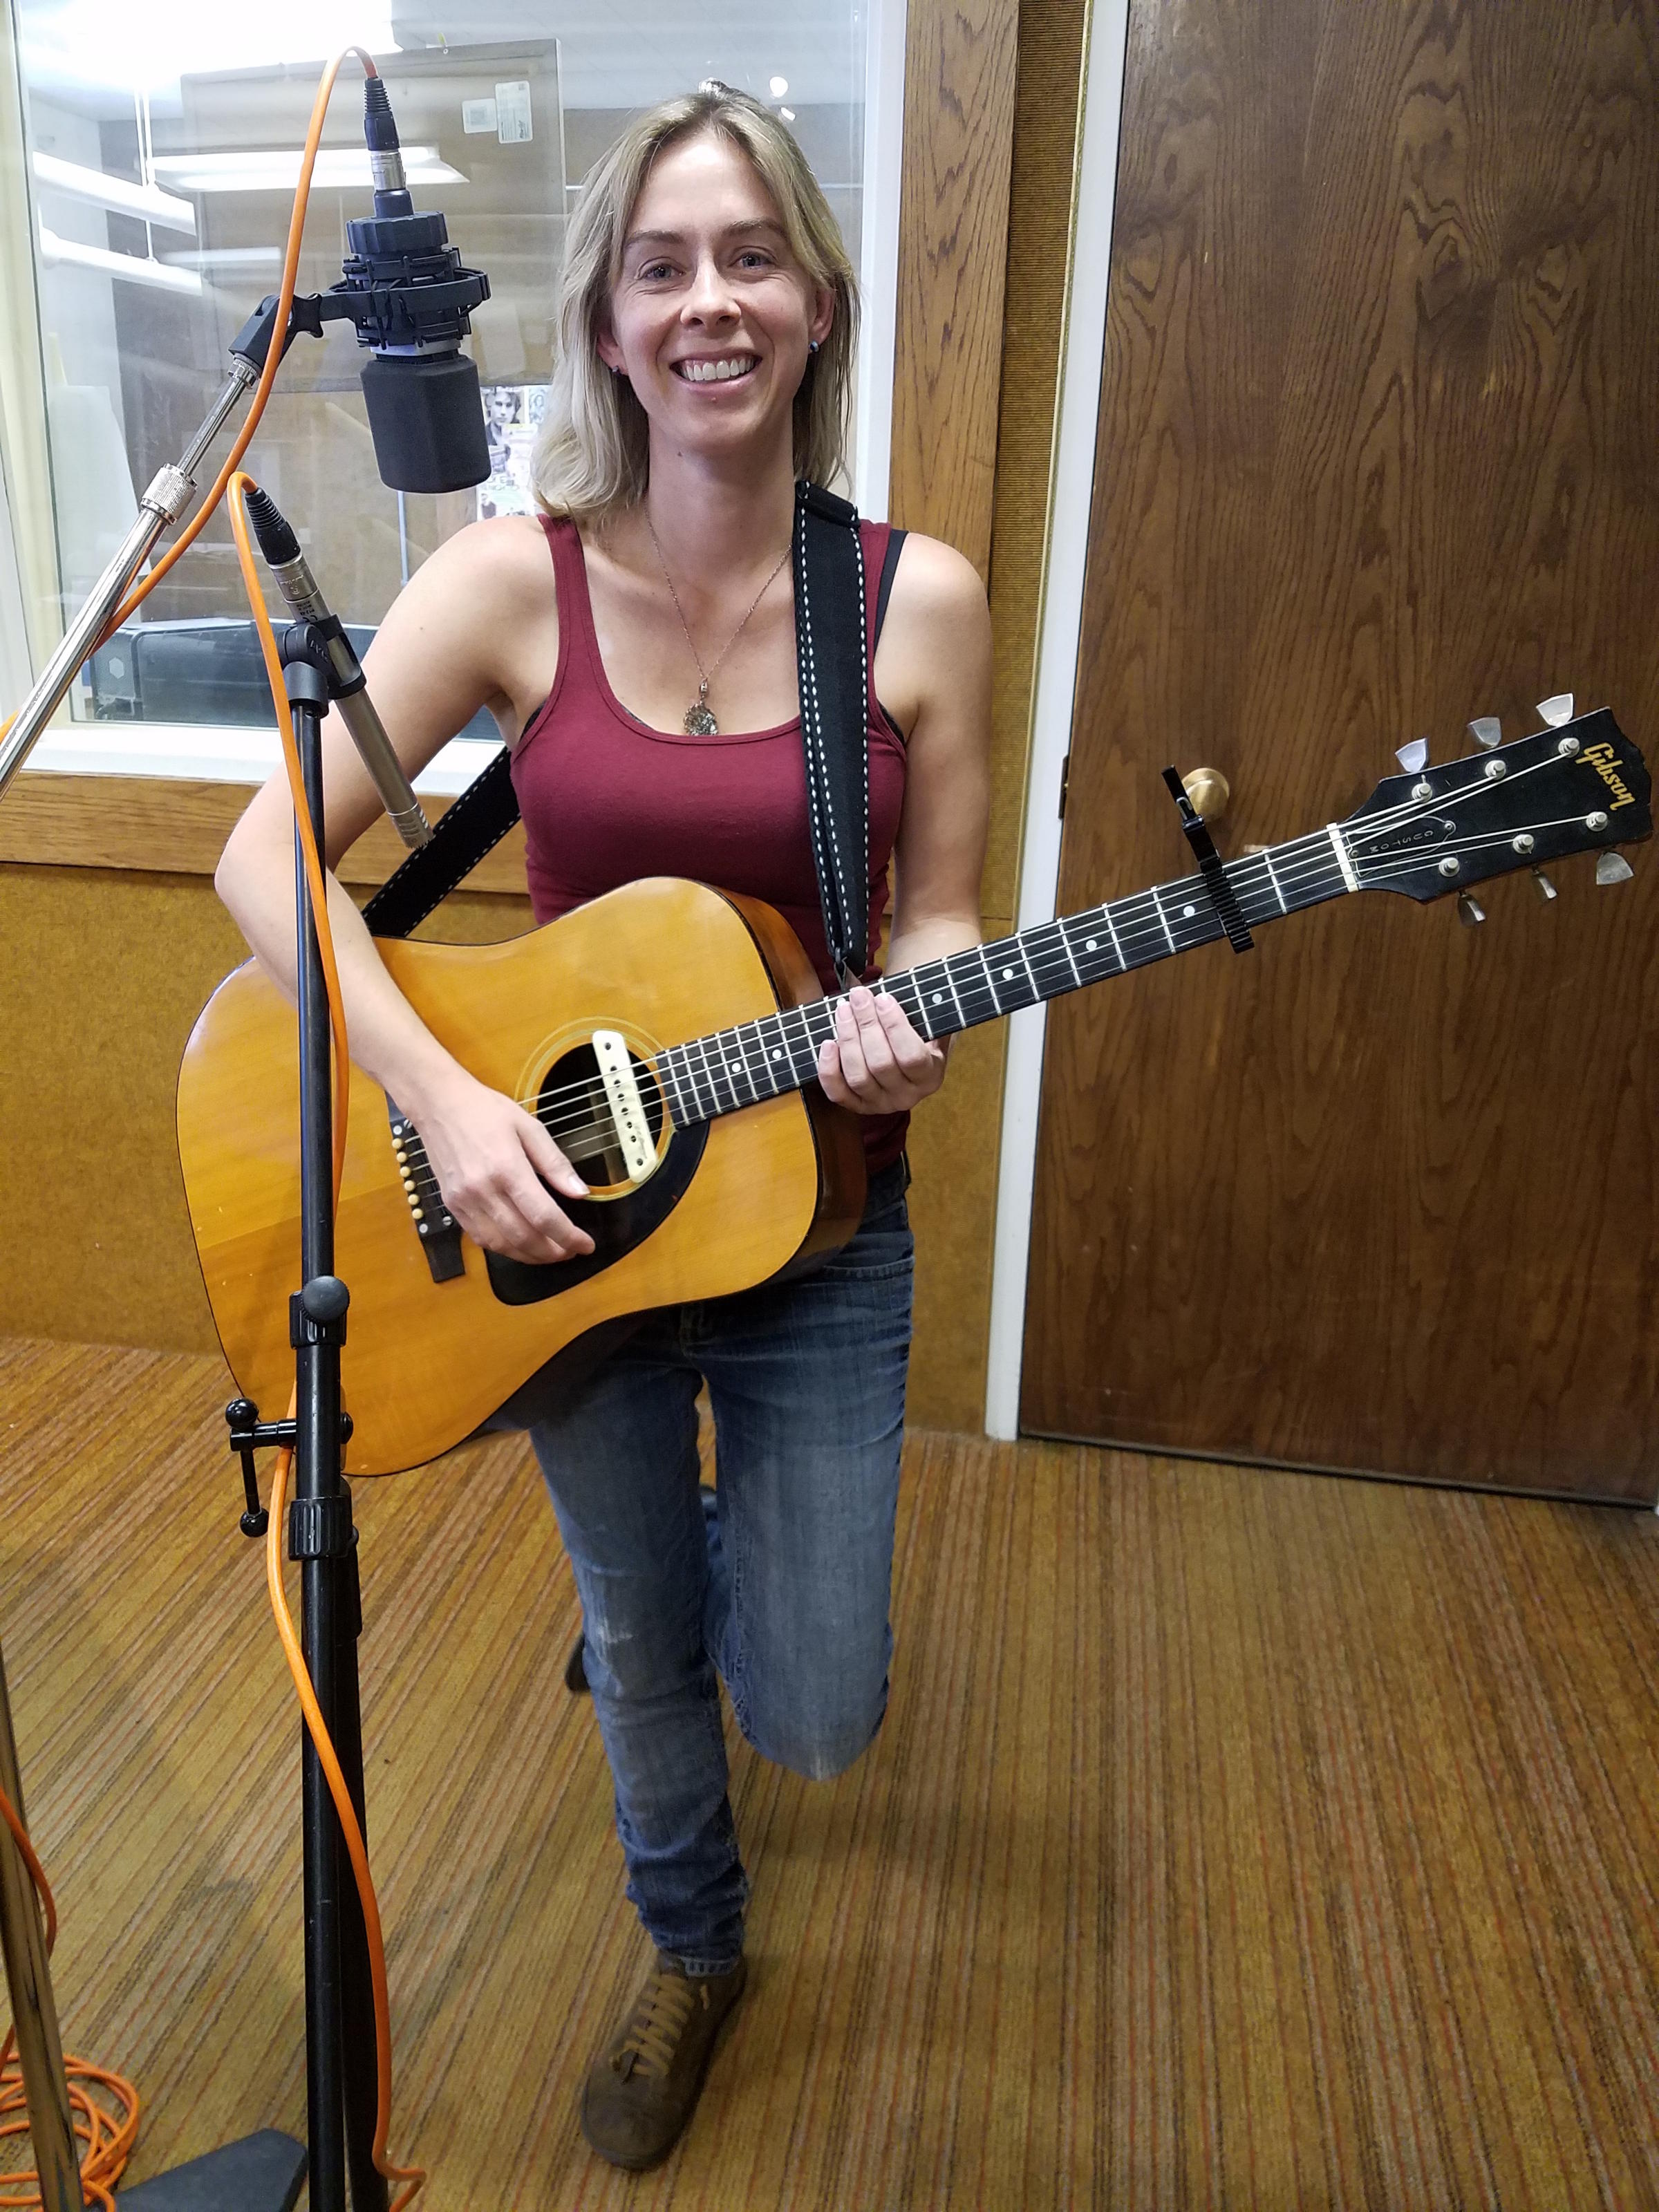 dallas singer songwriter vanessa peters on morning music wyoming view slideshow 2 of 3